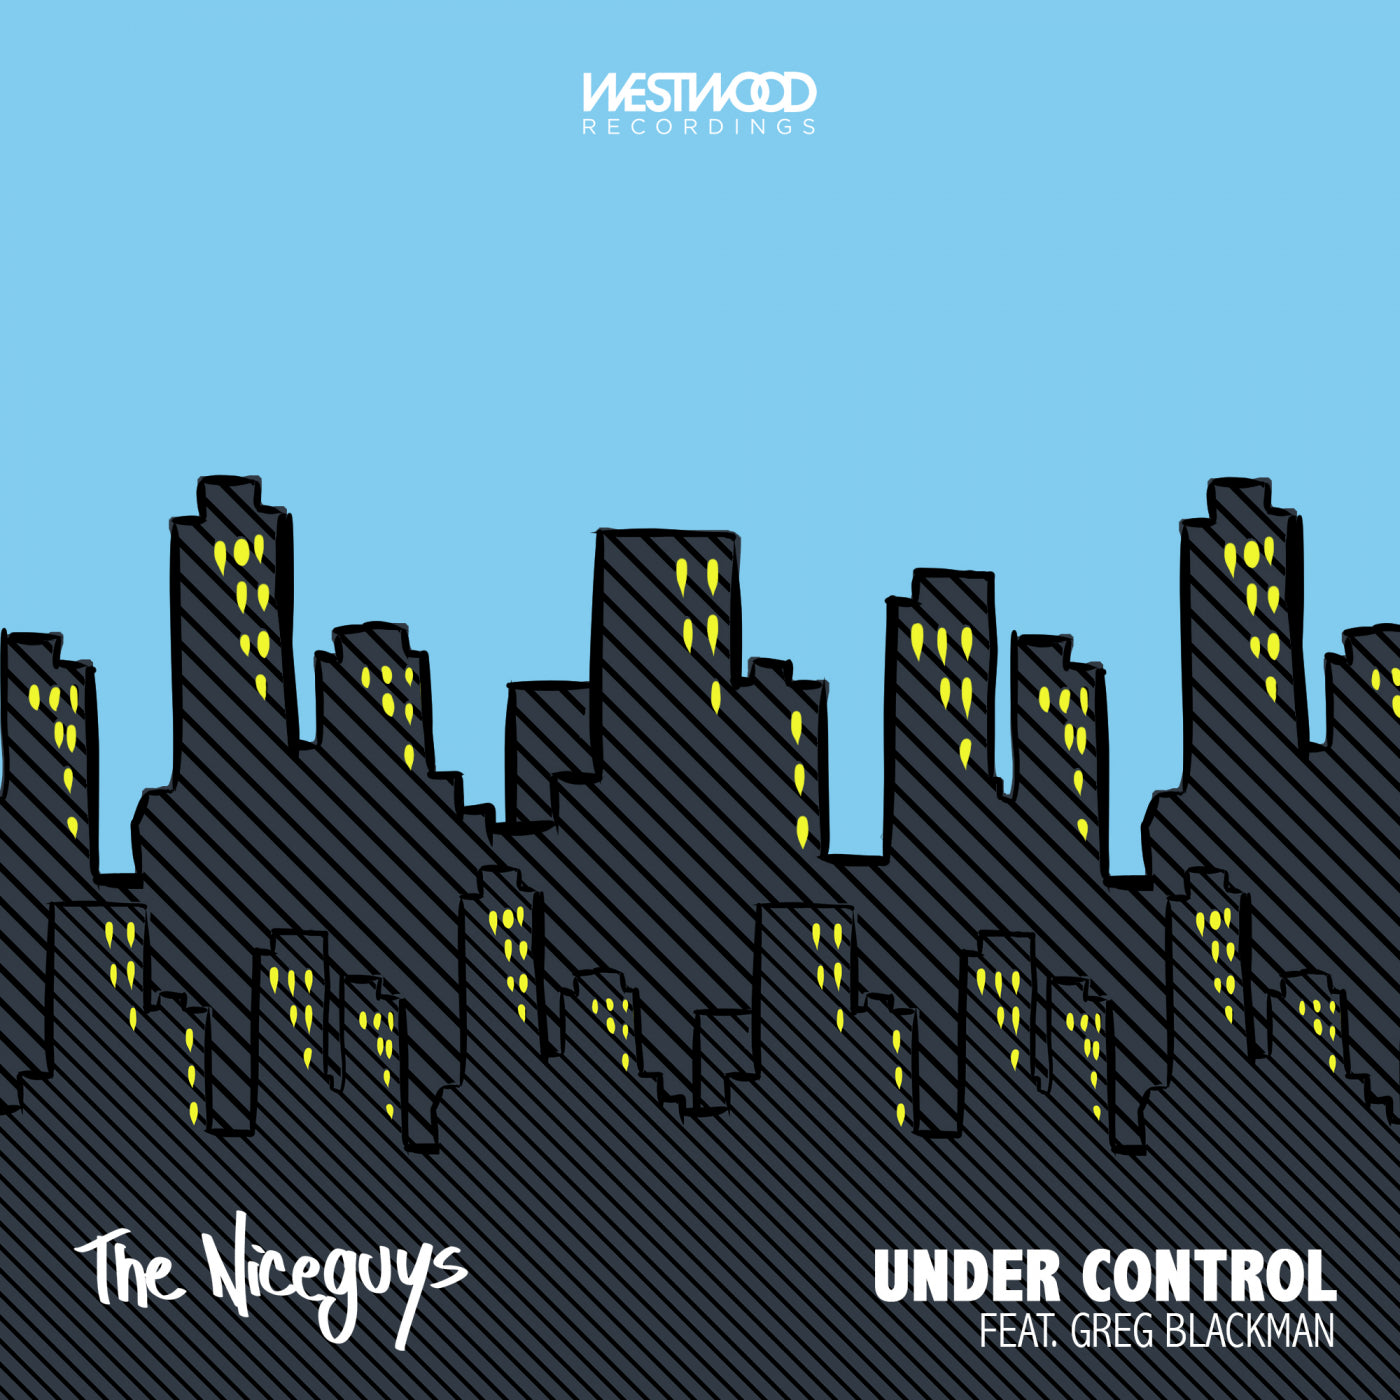 The Niceguys - Under Control feat. Greg Blackman